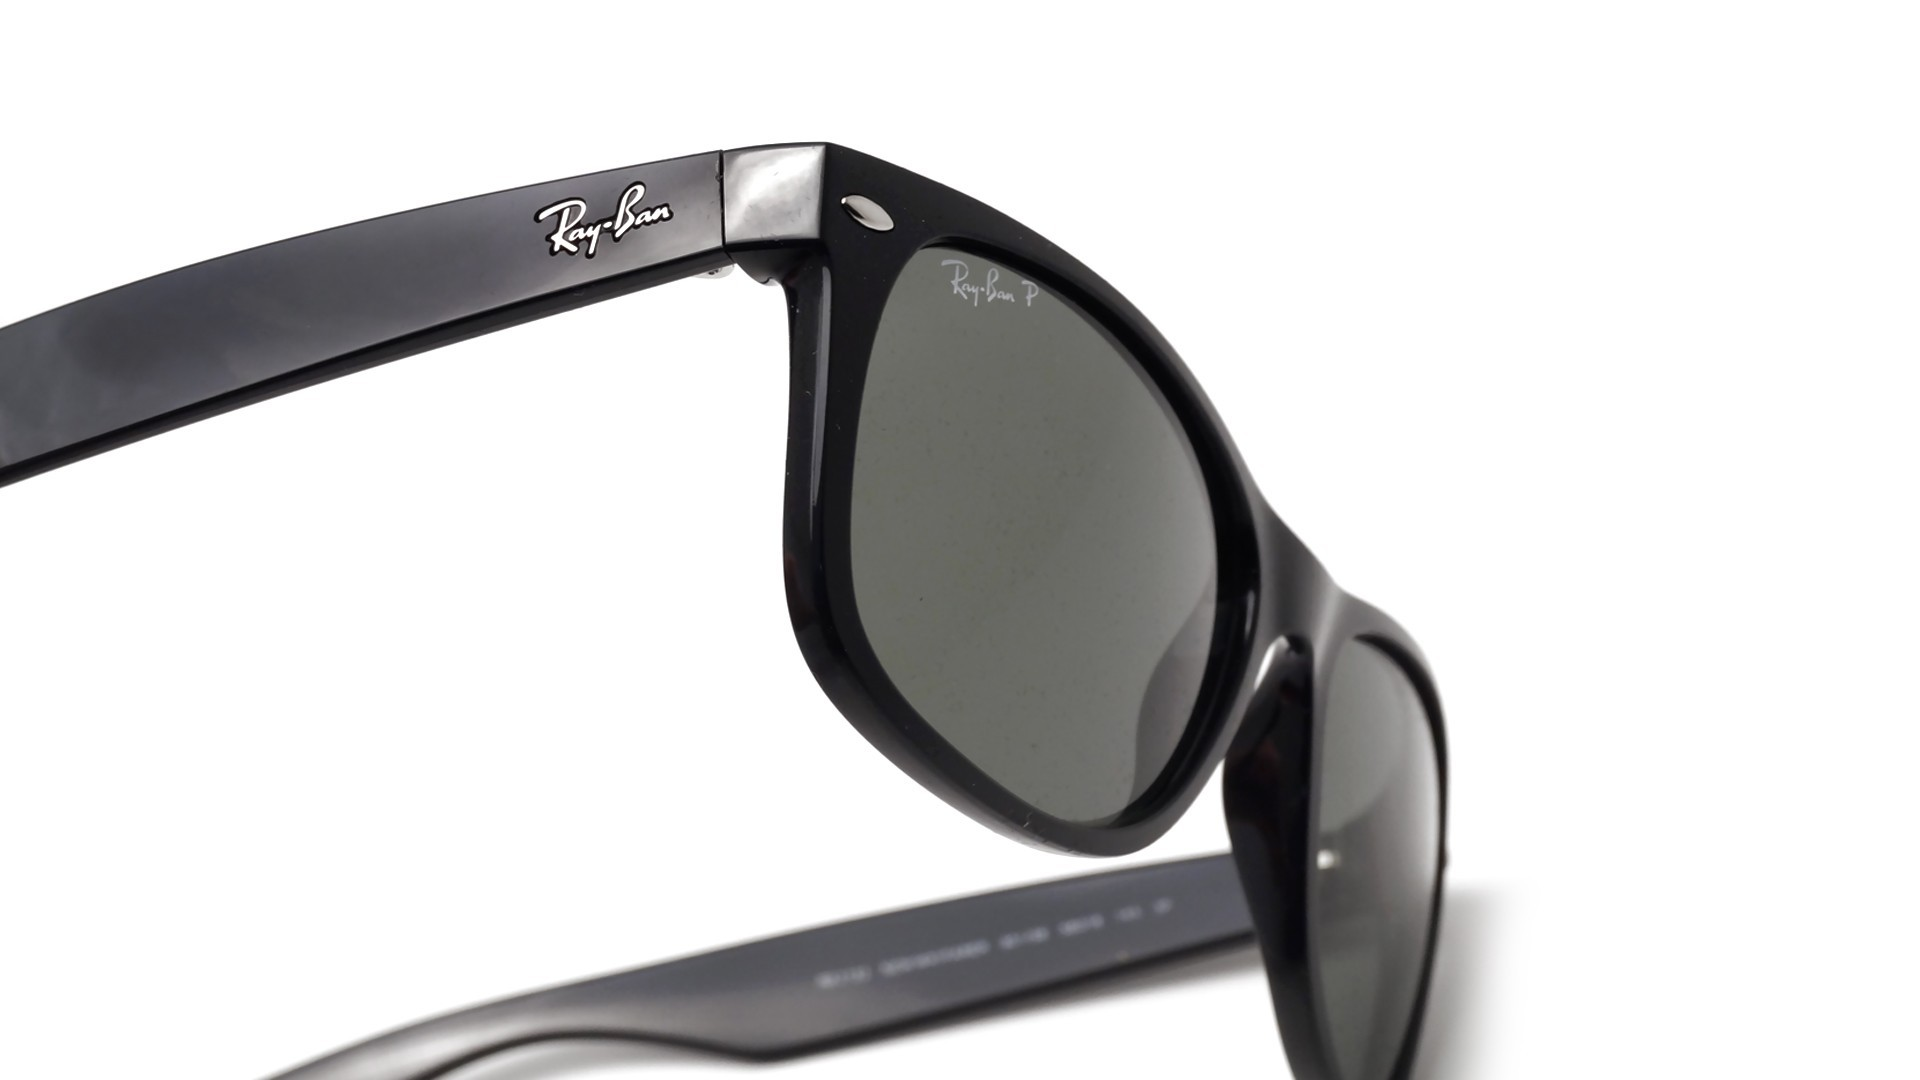 cf696987d2 Ray Ban Sunglasses Rb2132 Price « One More Soul